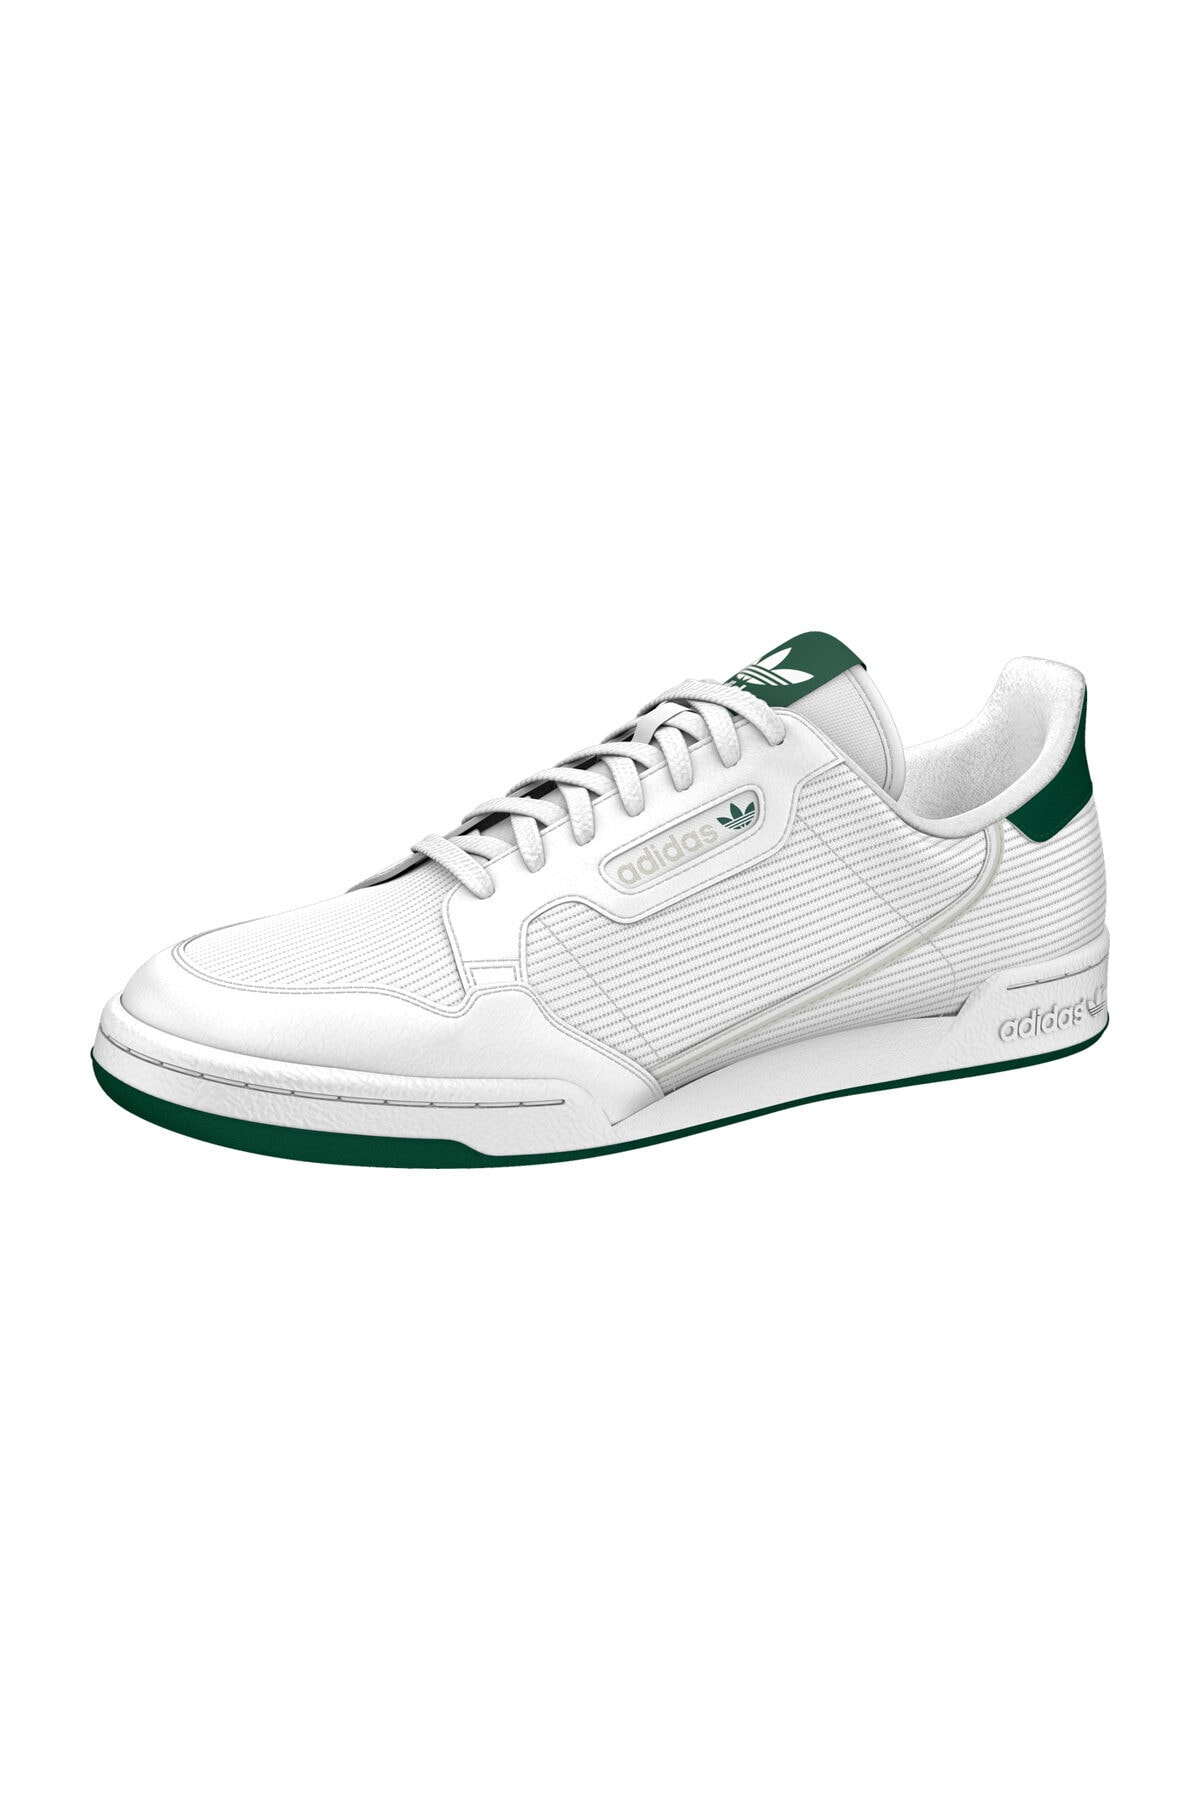 adidas CONTINENTAL Sneaker 80      FTWWHT/GREONE/CGREEN 1